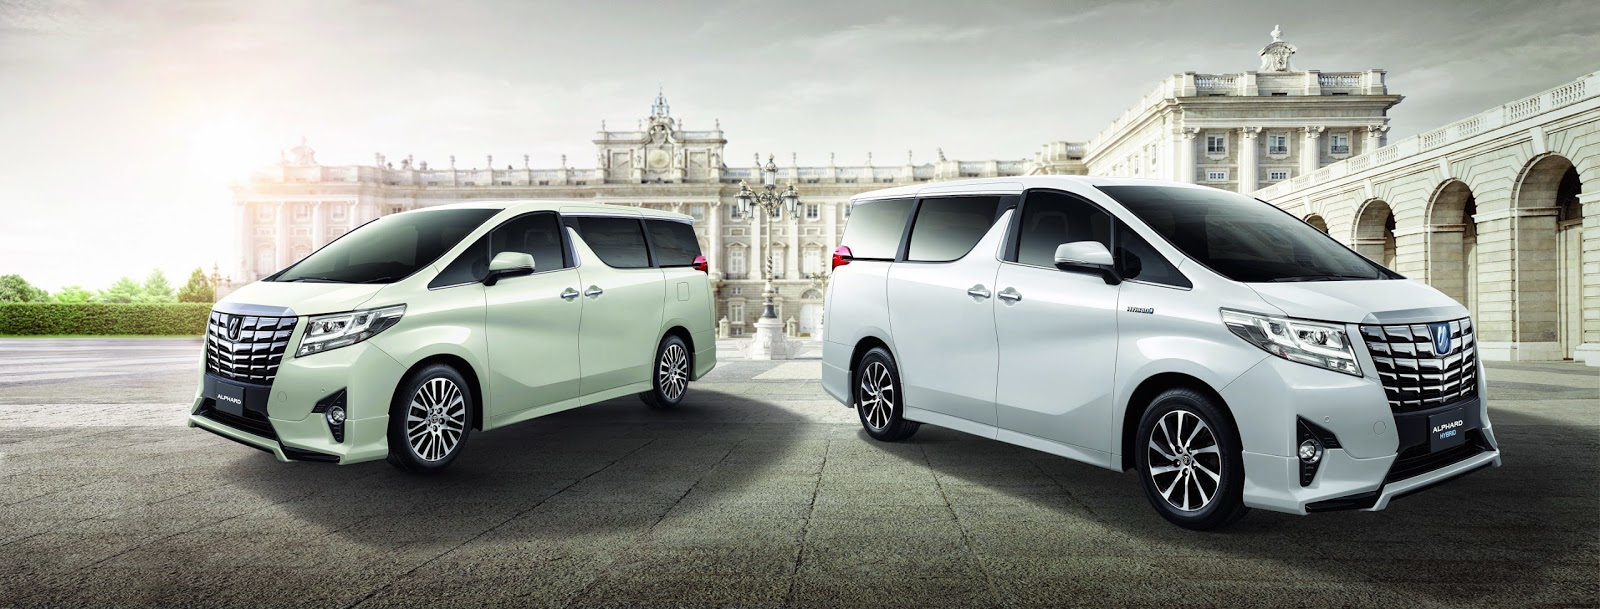 commercial ads of alphard